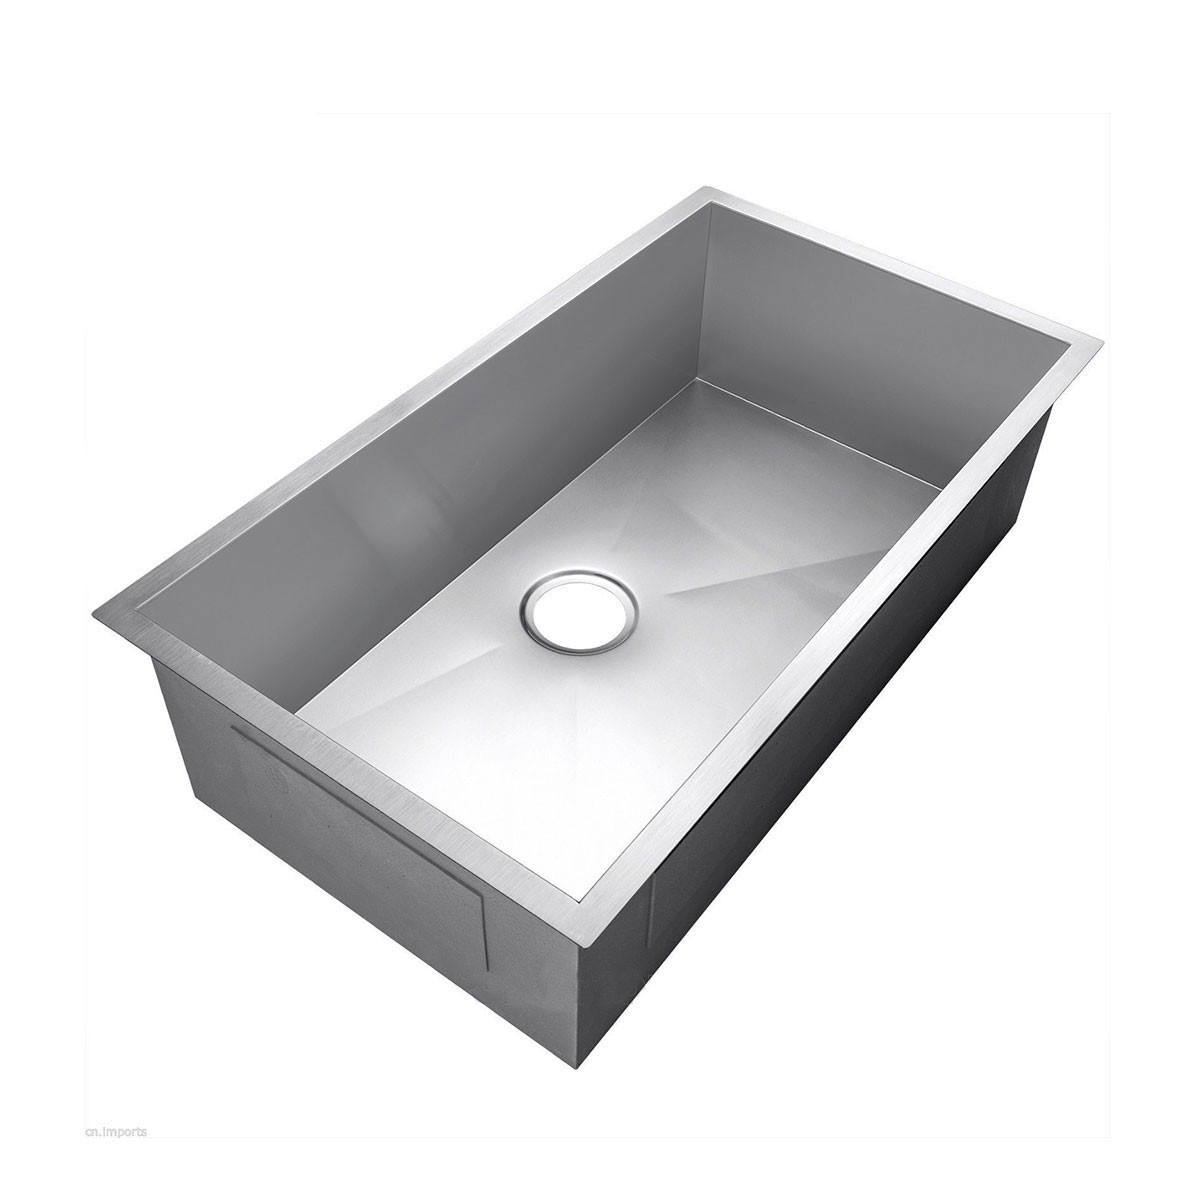 33.5 X 17.5 In. Stainless Steel Single Bowl Kitchen Sink (AS3418 R0)